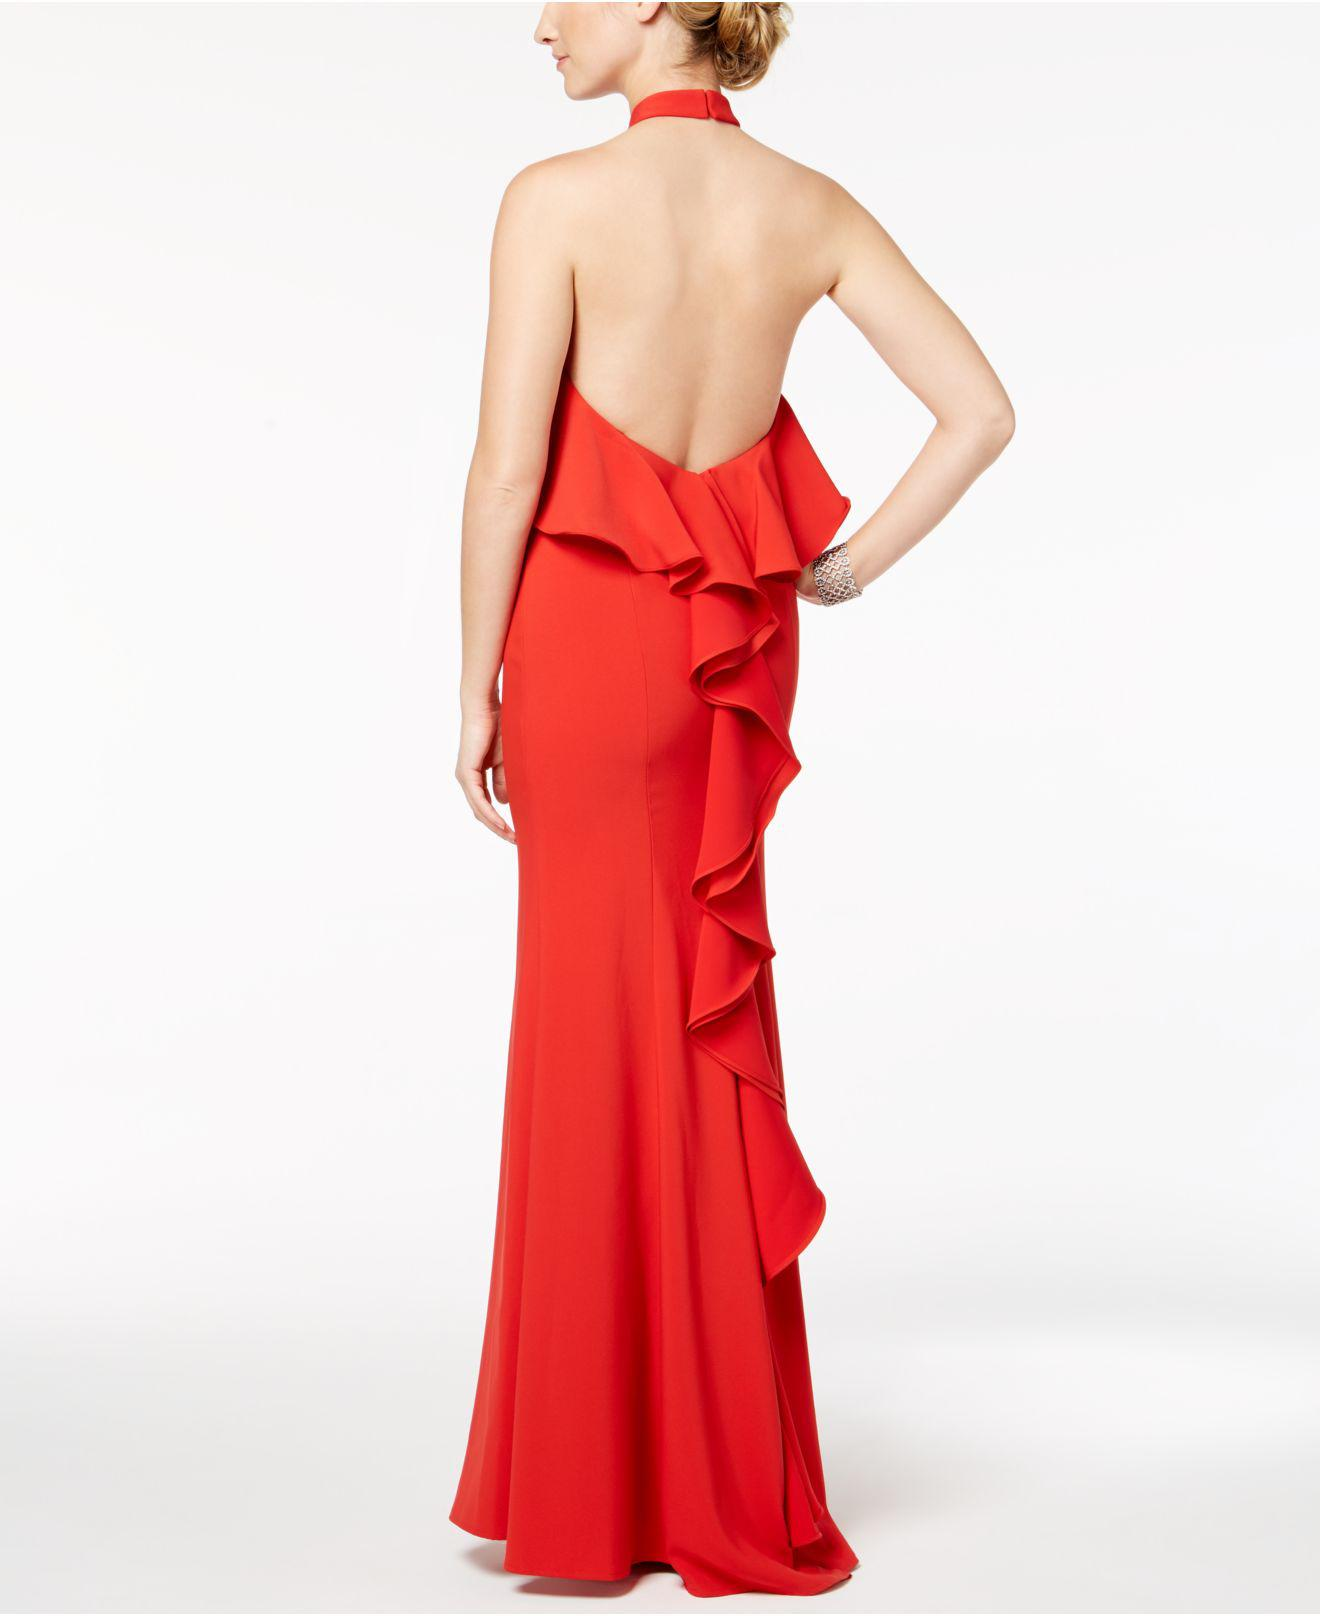 59ae9933 Xscape Popover Ruffle-back Halter Gown in Red - Lyst